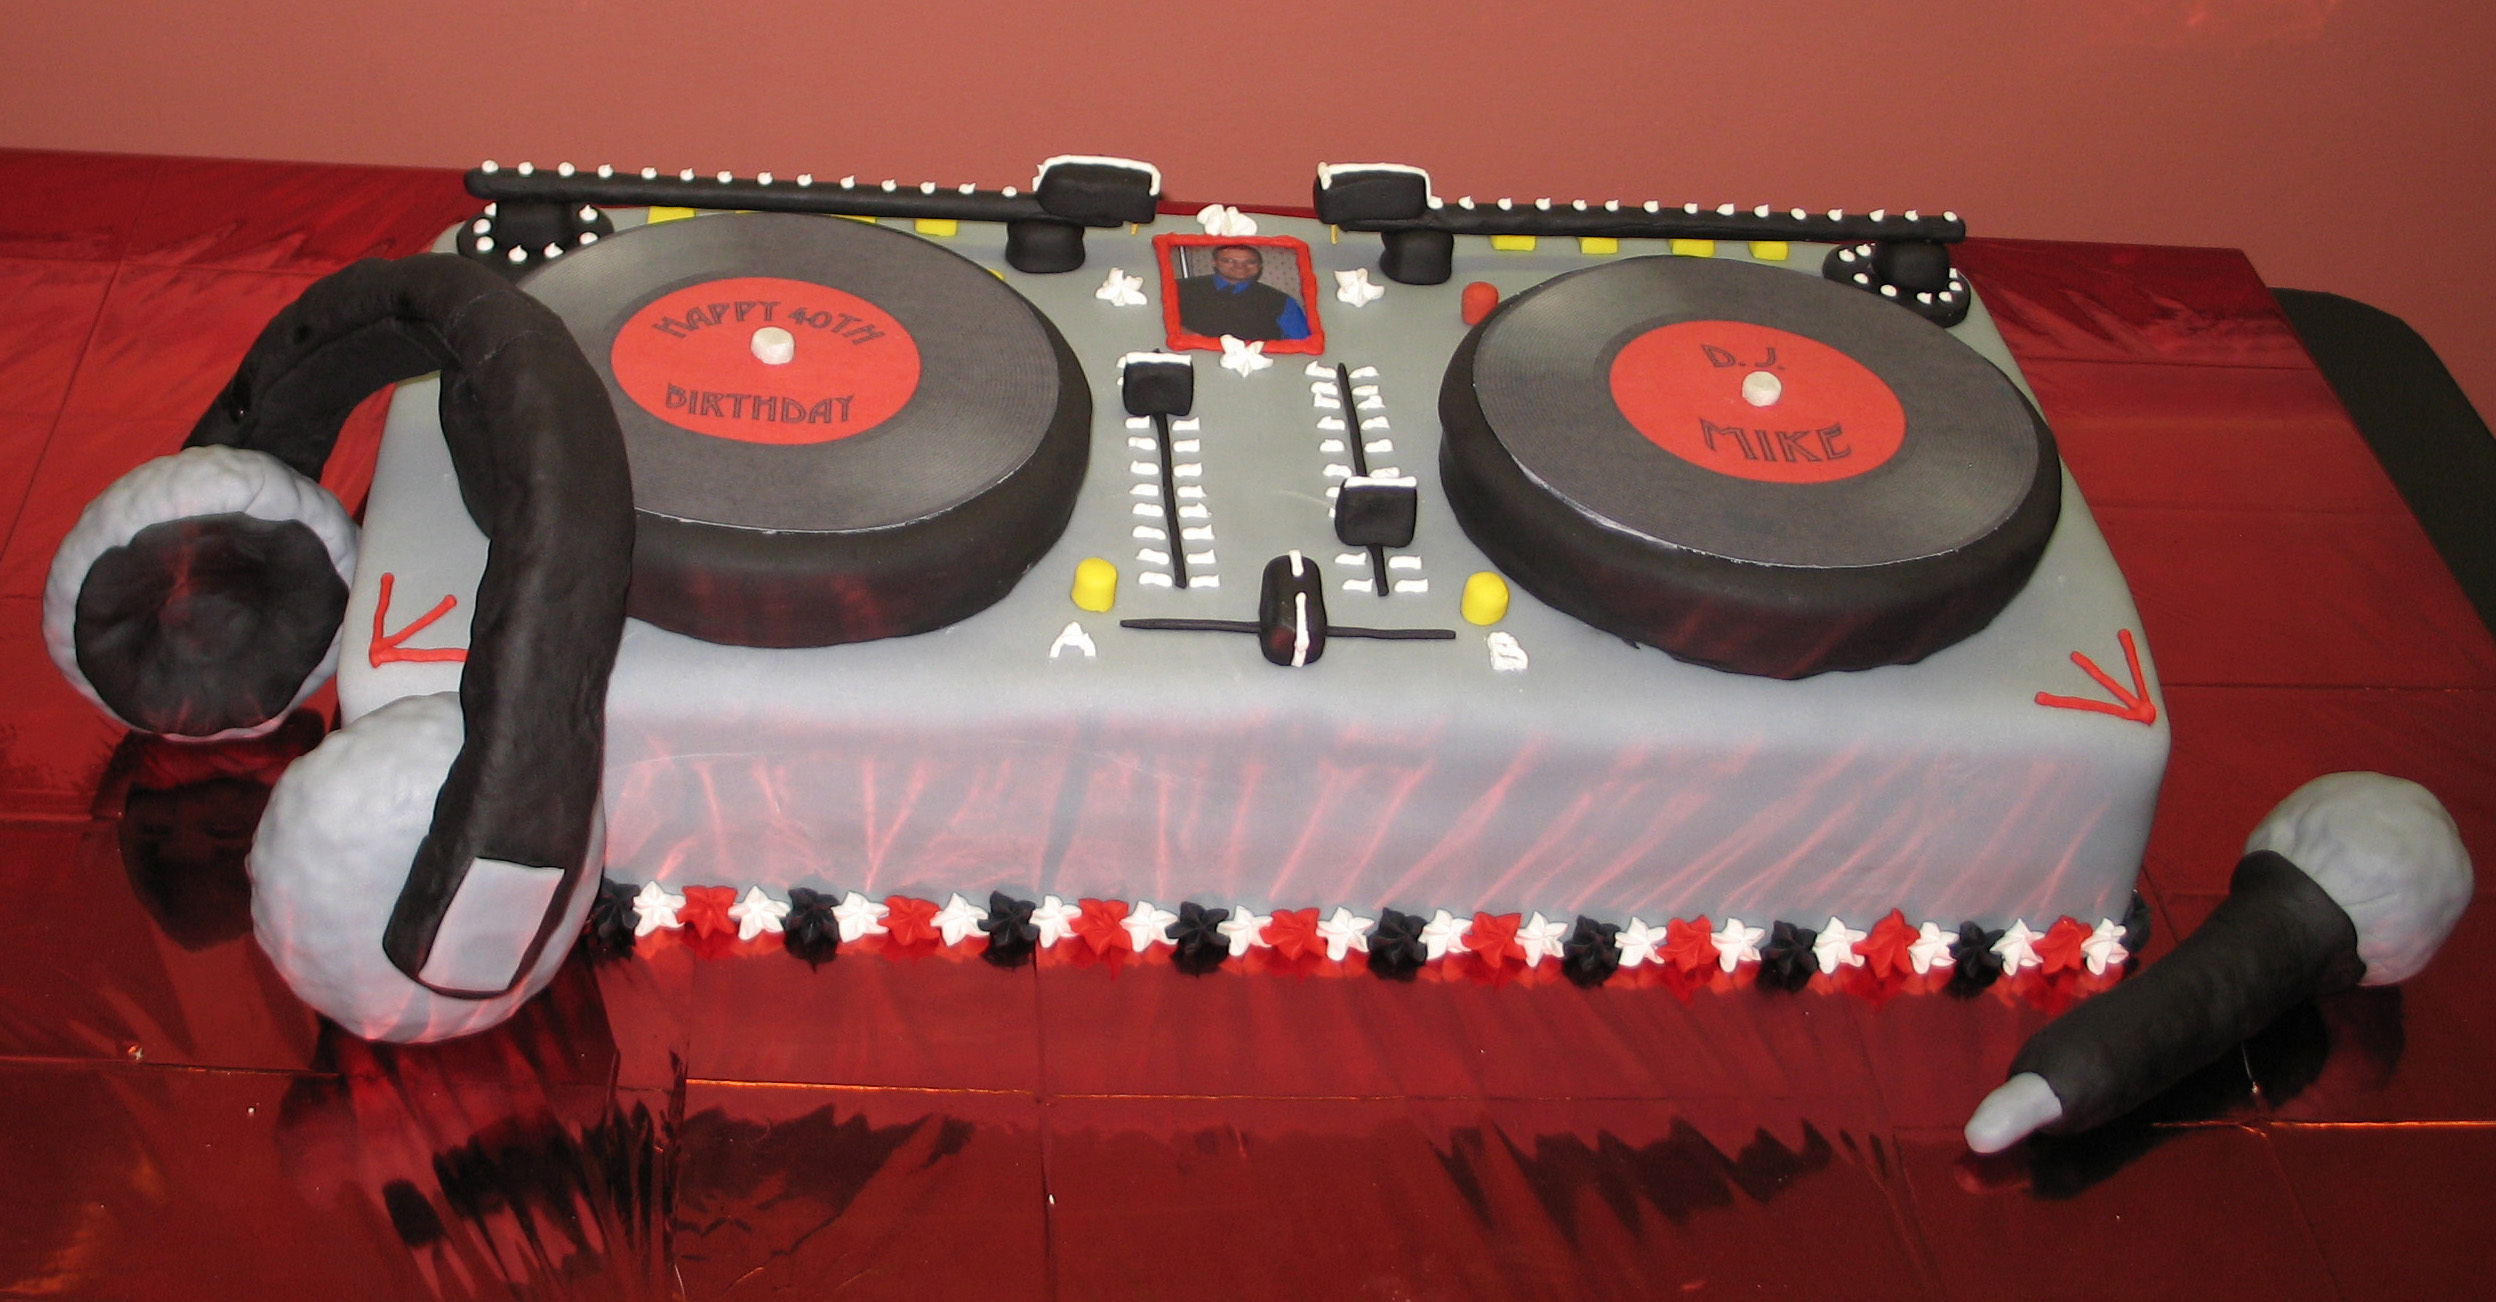 Inspiration, Reception, Flowers & Decor, Cakes, red, cake, Board, Dj, Grooms, Professional